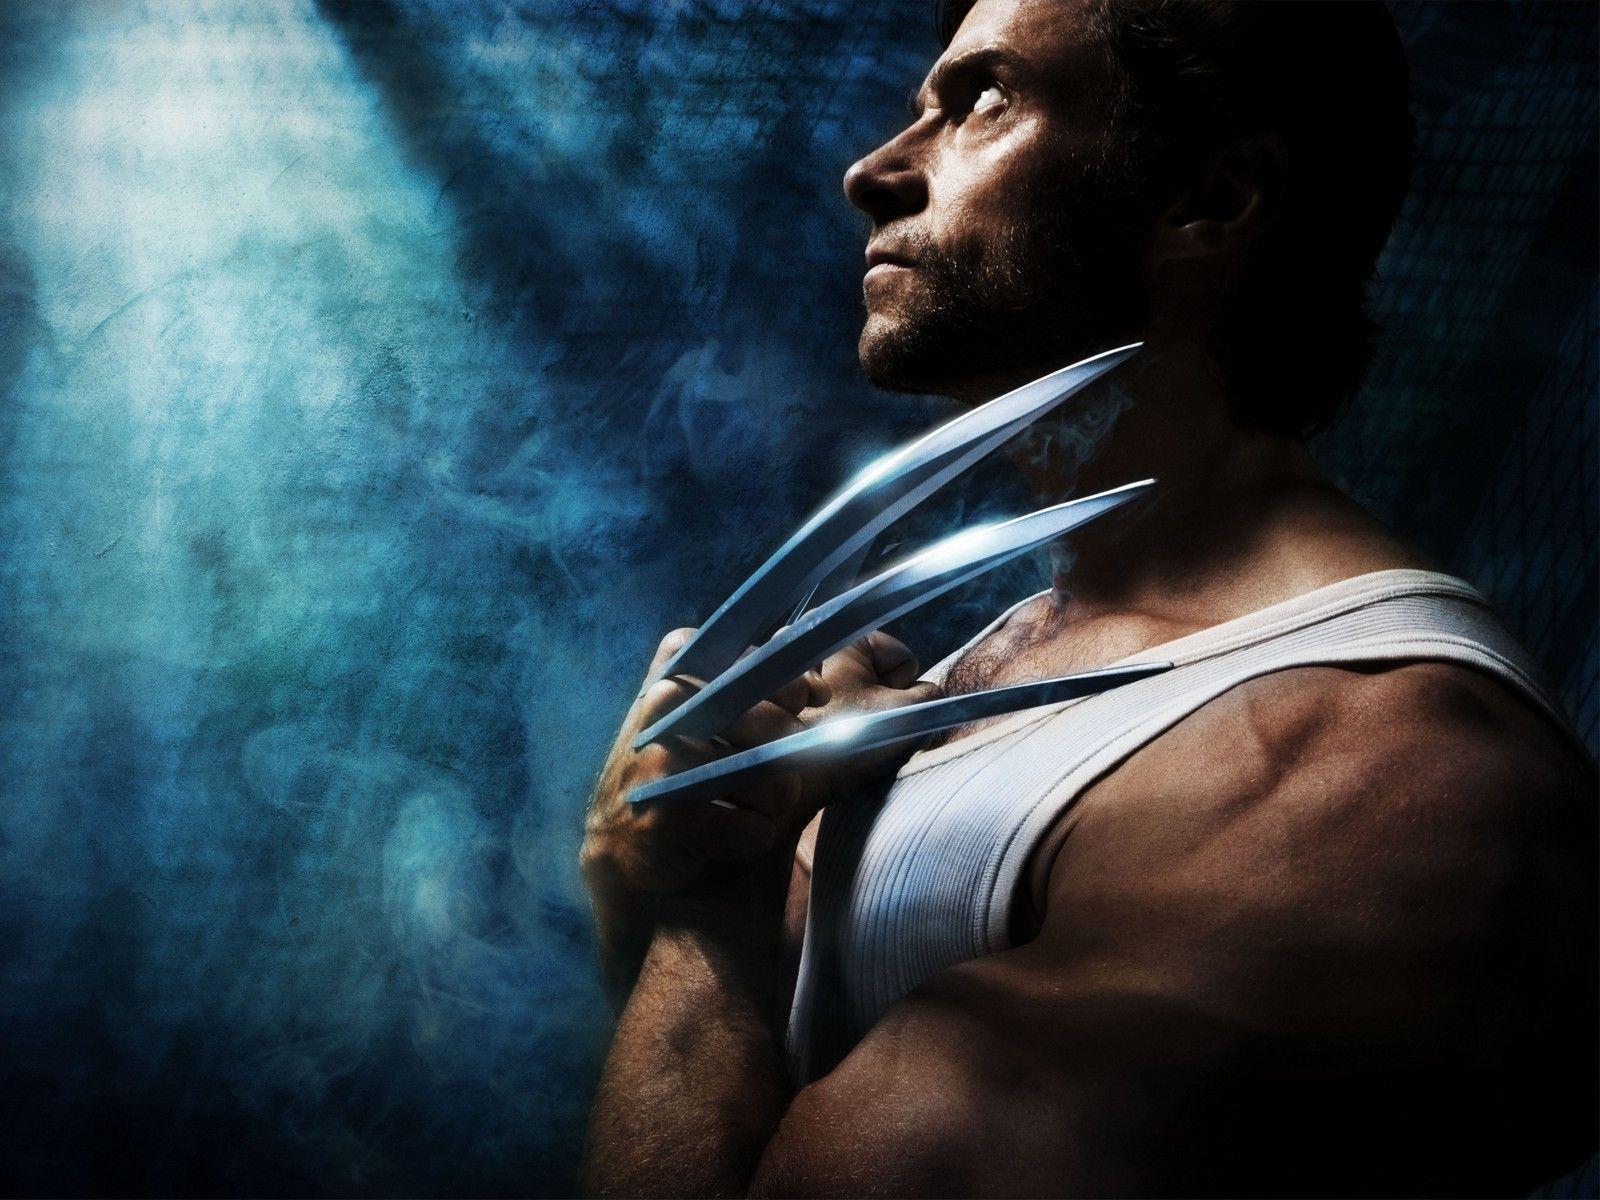 Wallpapers Tagged With WOLVERINE | WOLVERINE HD Wallpapers | Page 1